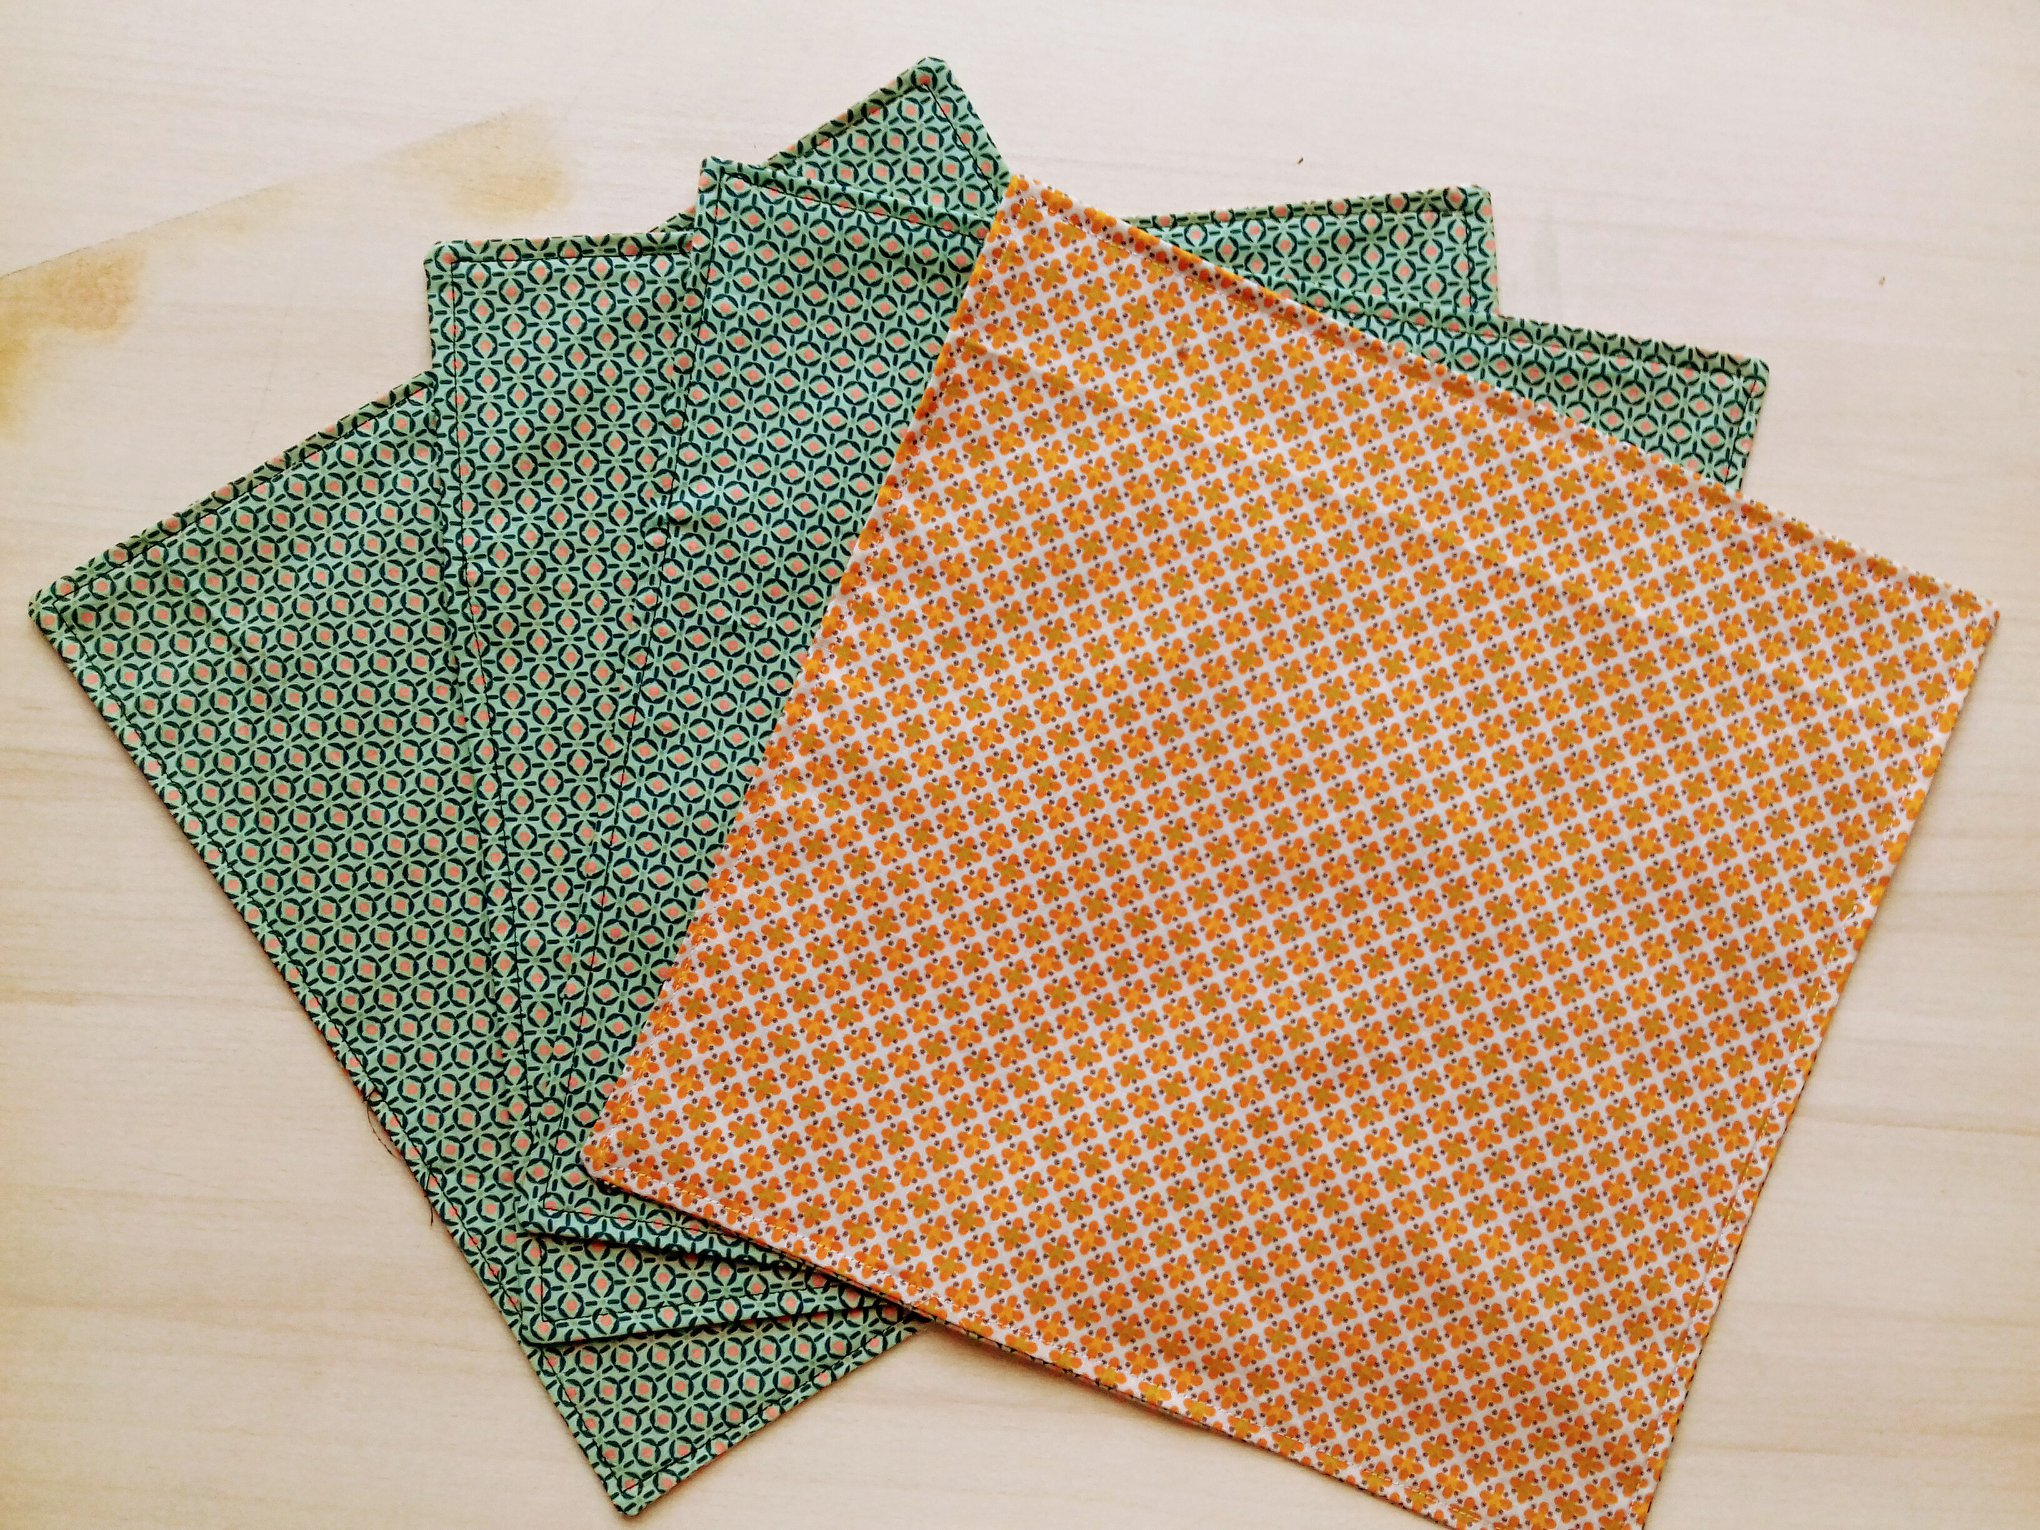 Lot de 6 serviettes de tables- 30 euros